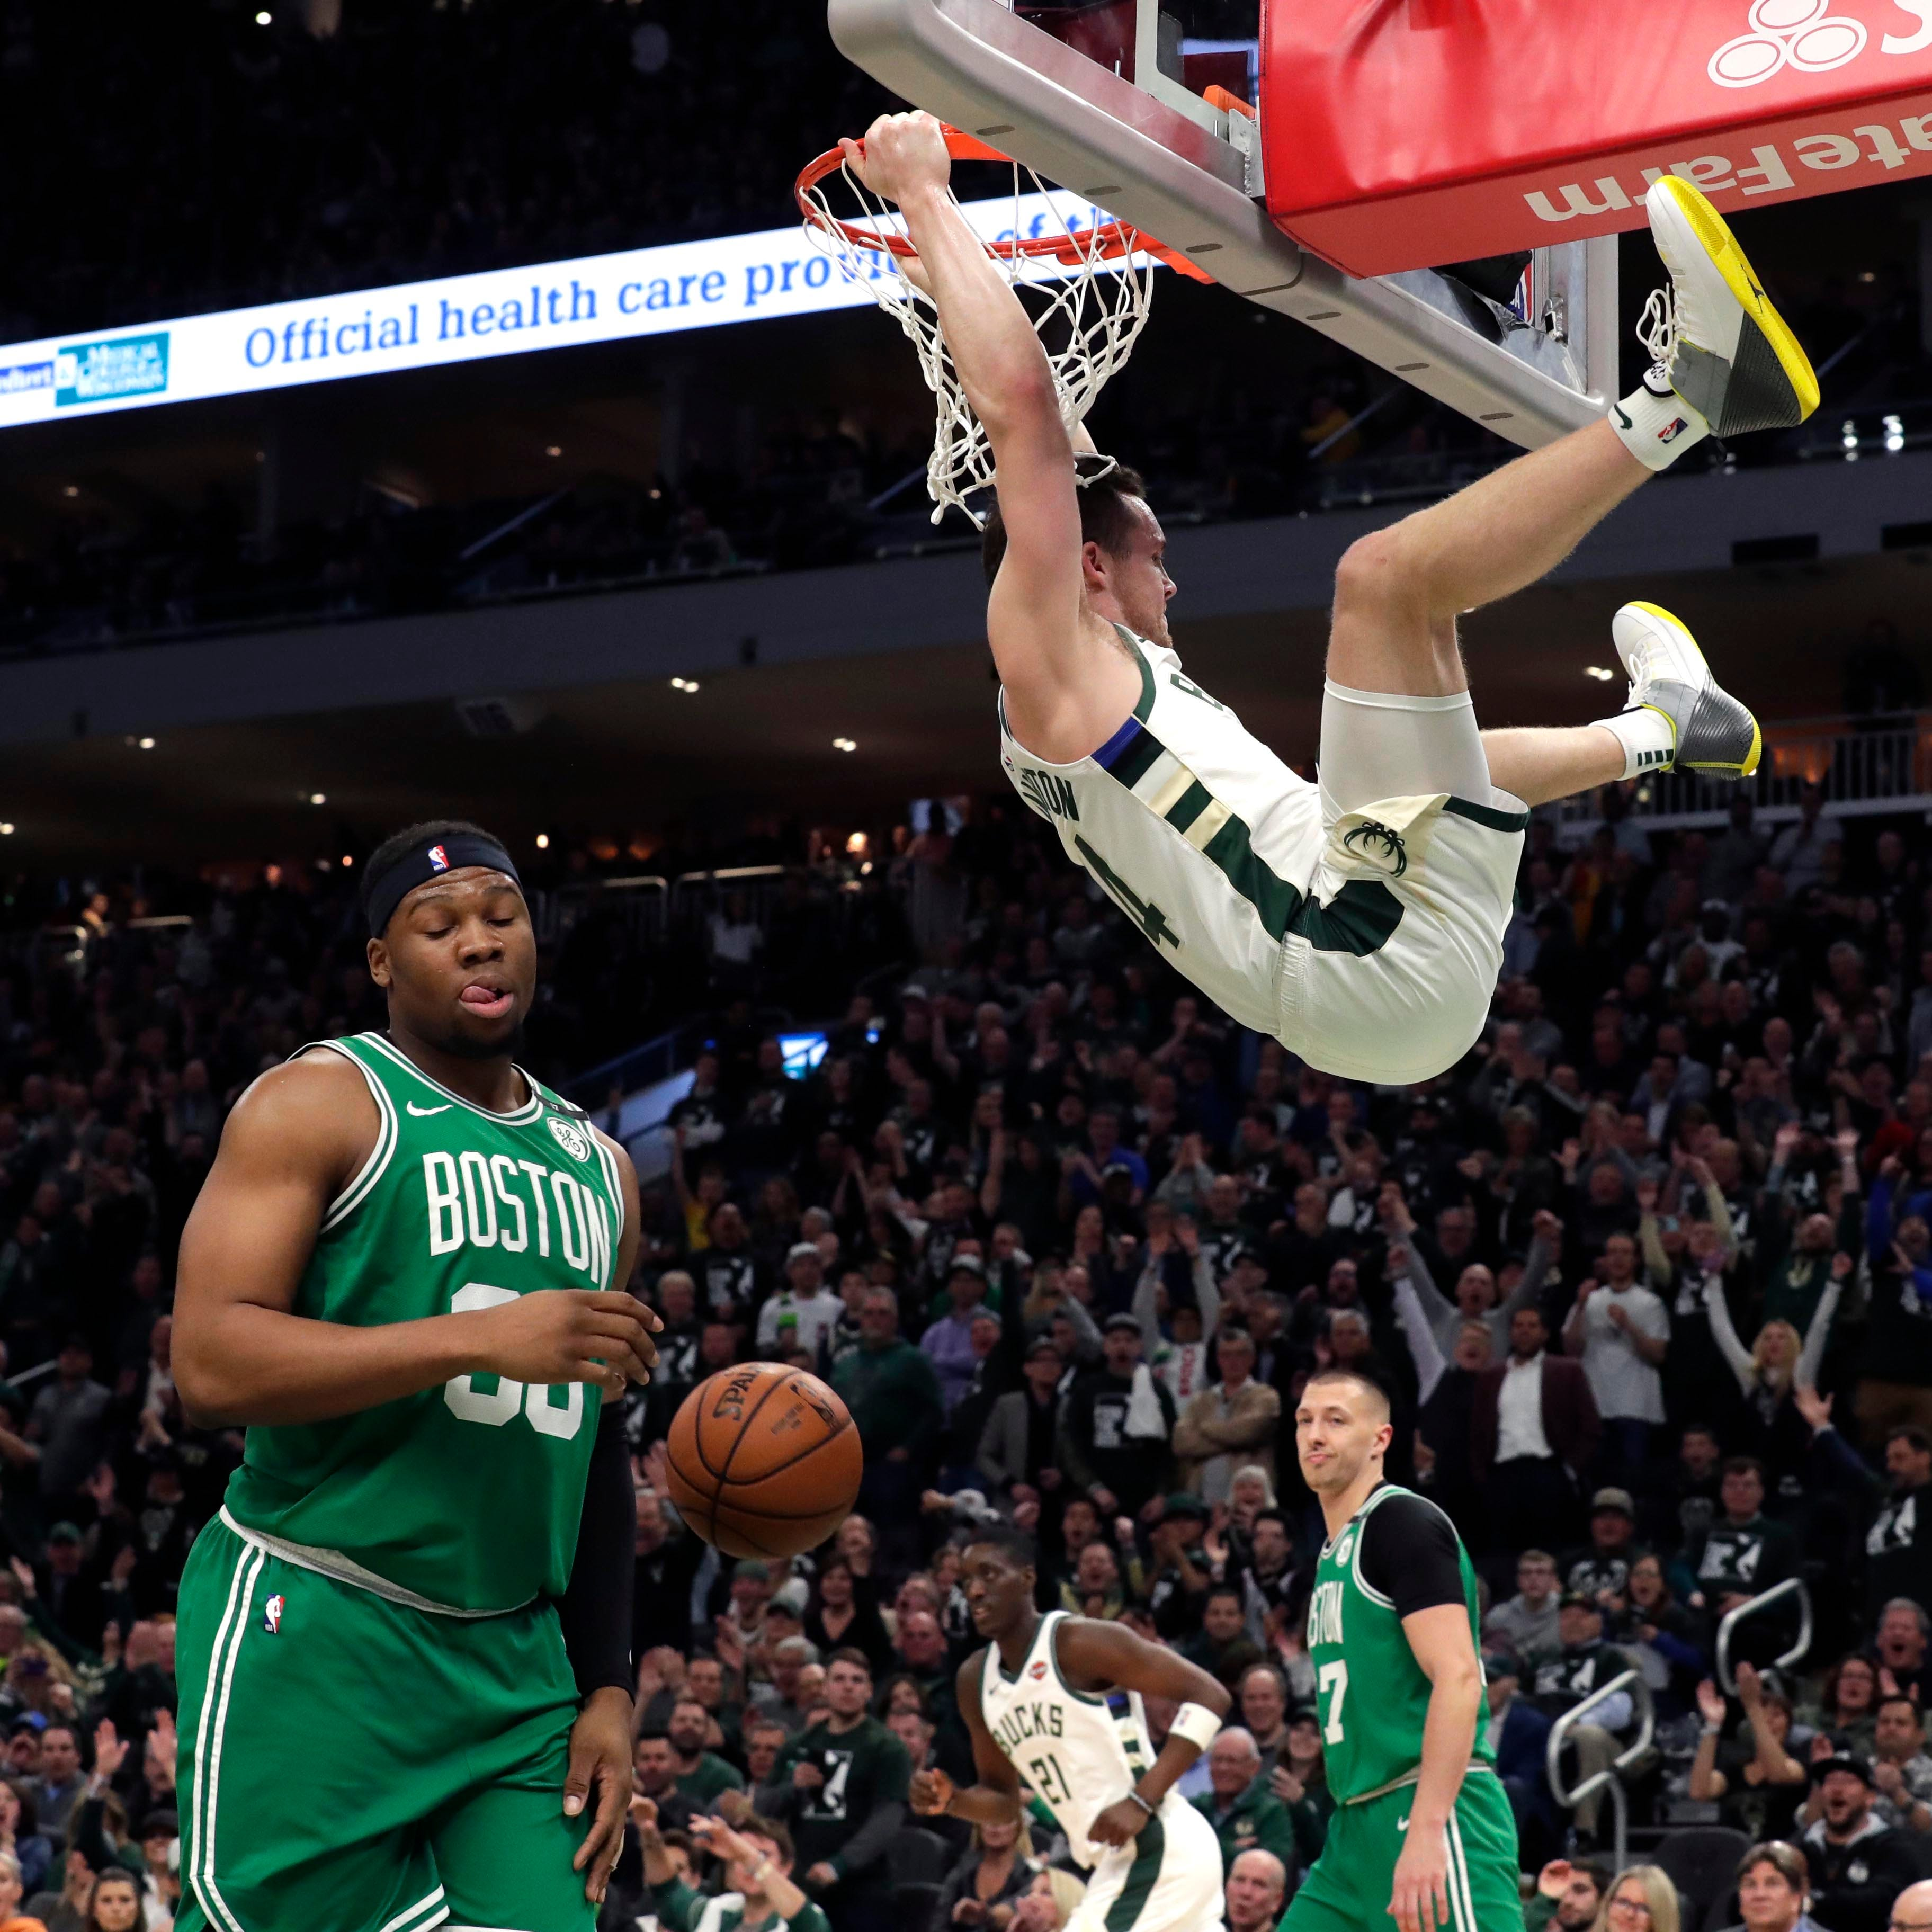 Five stats from the Celtics-Bucks series that are still hard to wrap our mind around